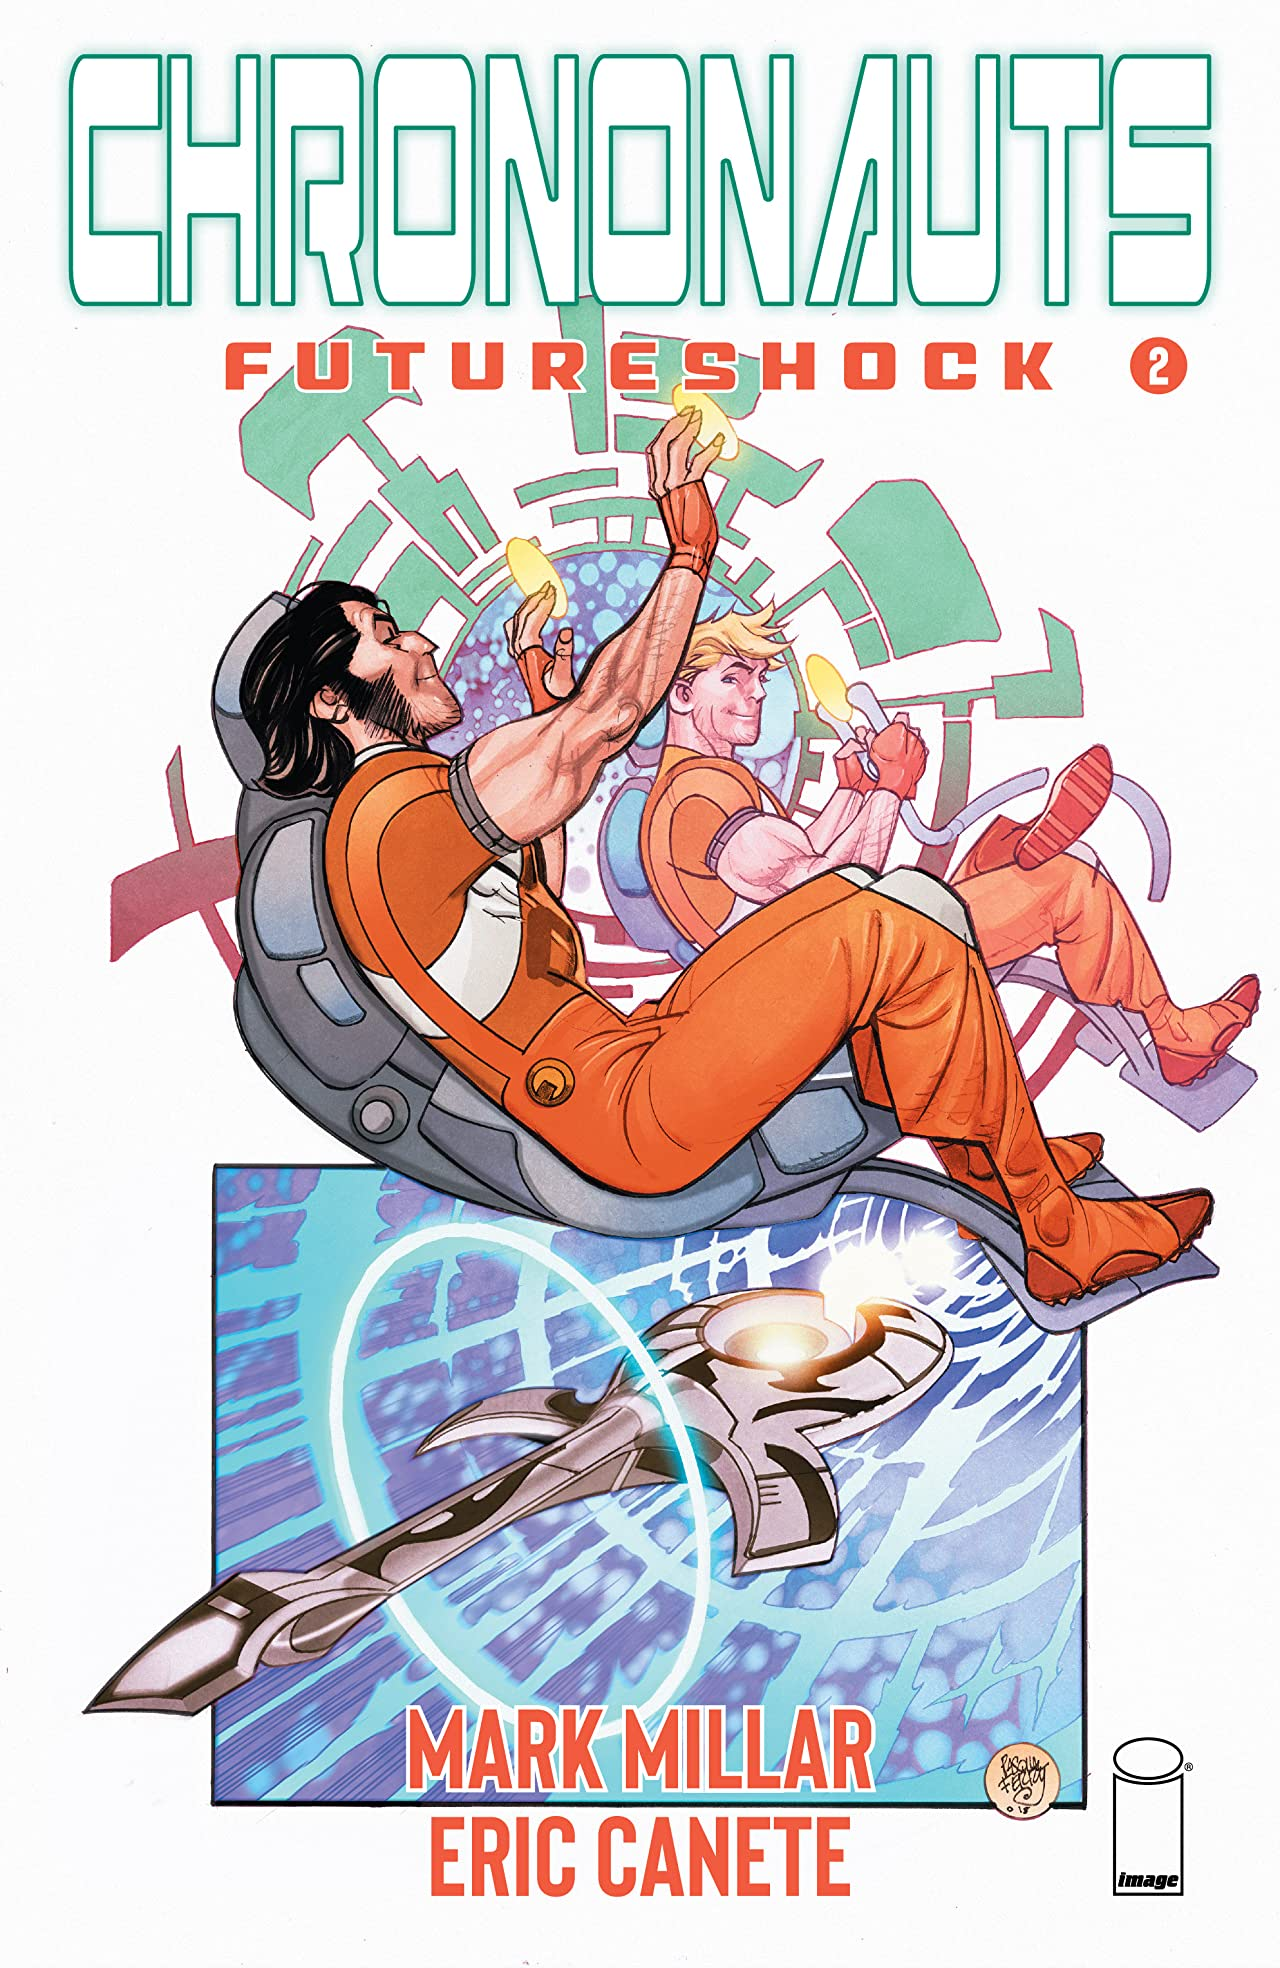 Chrononauts: Futureshock No.2